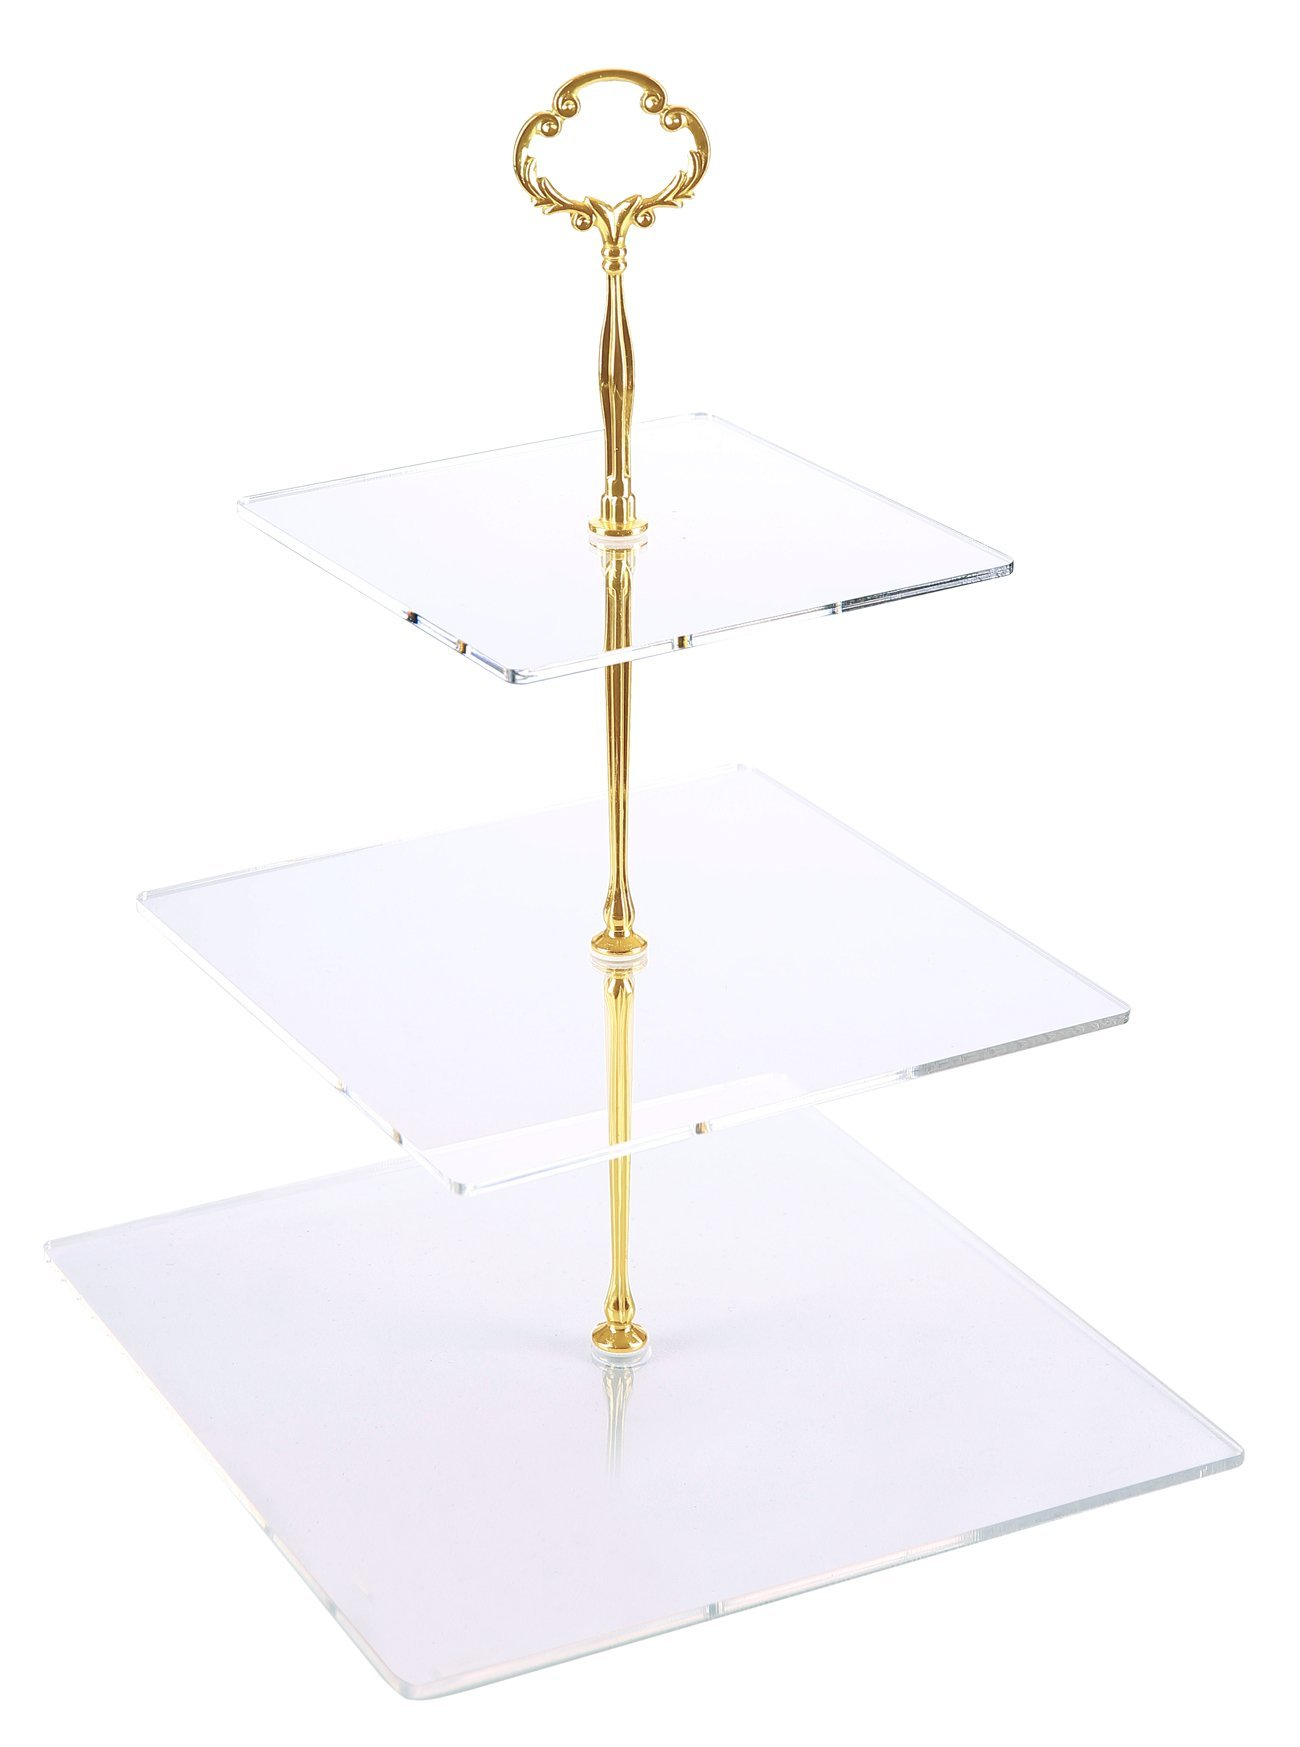 Jusalpha 3 Tier Strong Acrylic Square Cupcake Stand, Dessert Display Tower (Gold Version 2, 1) 3SG-V2